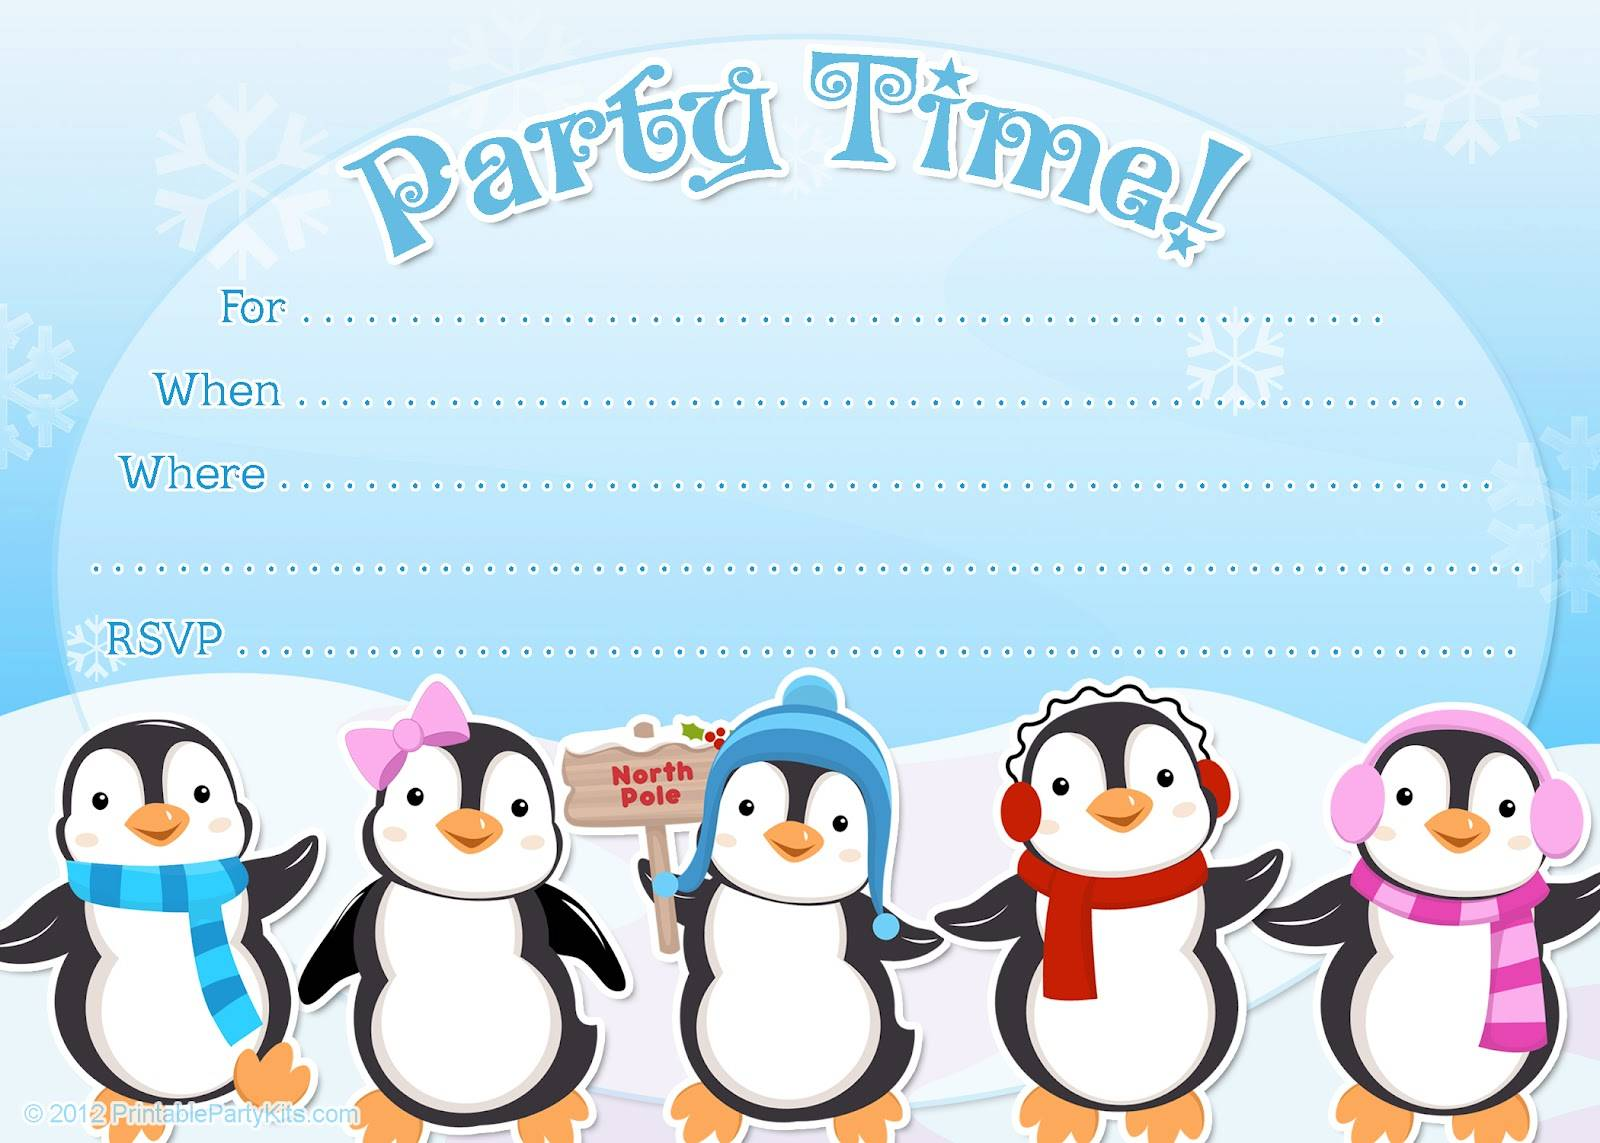 Winter Wonderland Party Invitations Template